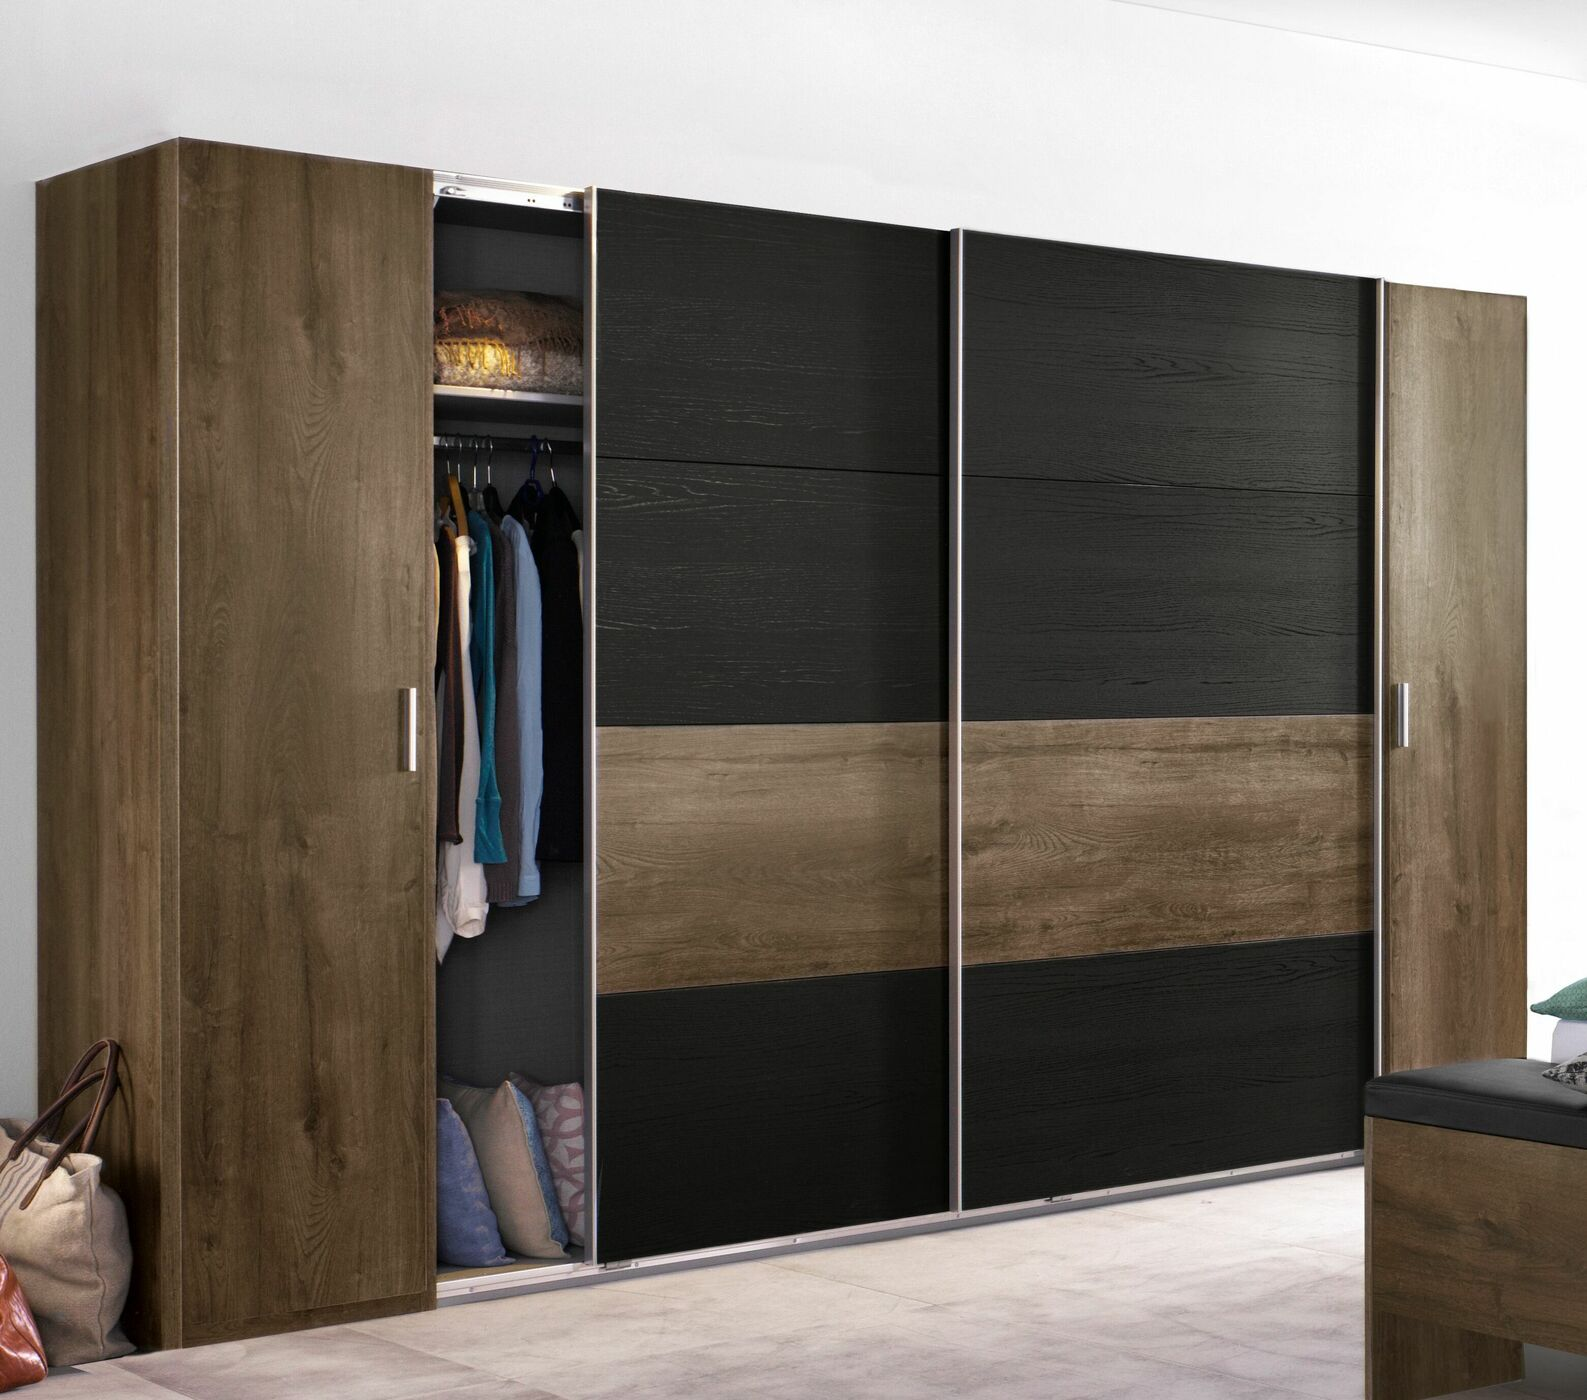 kleiderschrank holzdekor mit dreh und schwebet ren gallinaro. Black Bedroom Furniture Sets. Home Design Ideas